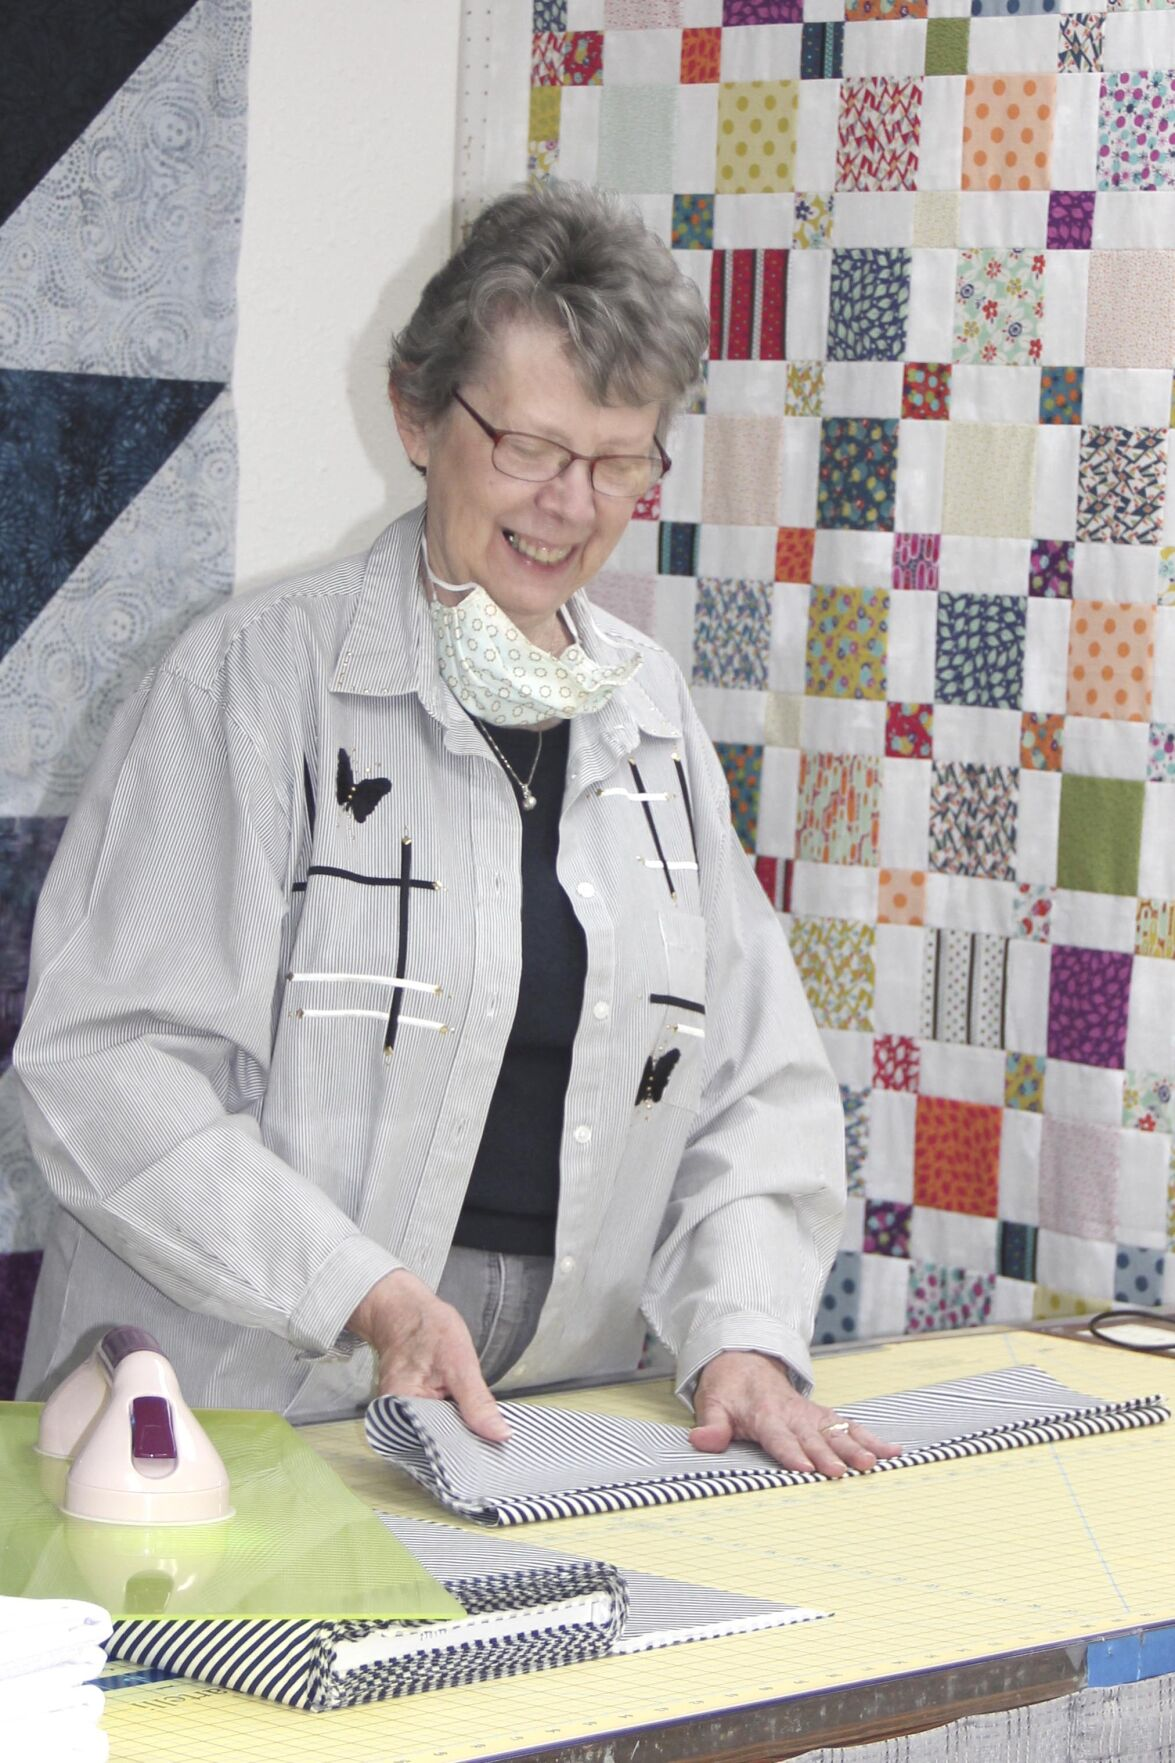 Non-quilter buys shop to keep customers in stitches